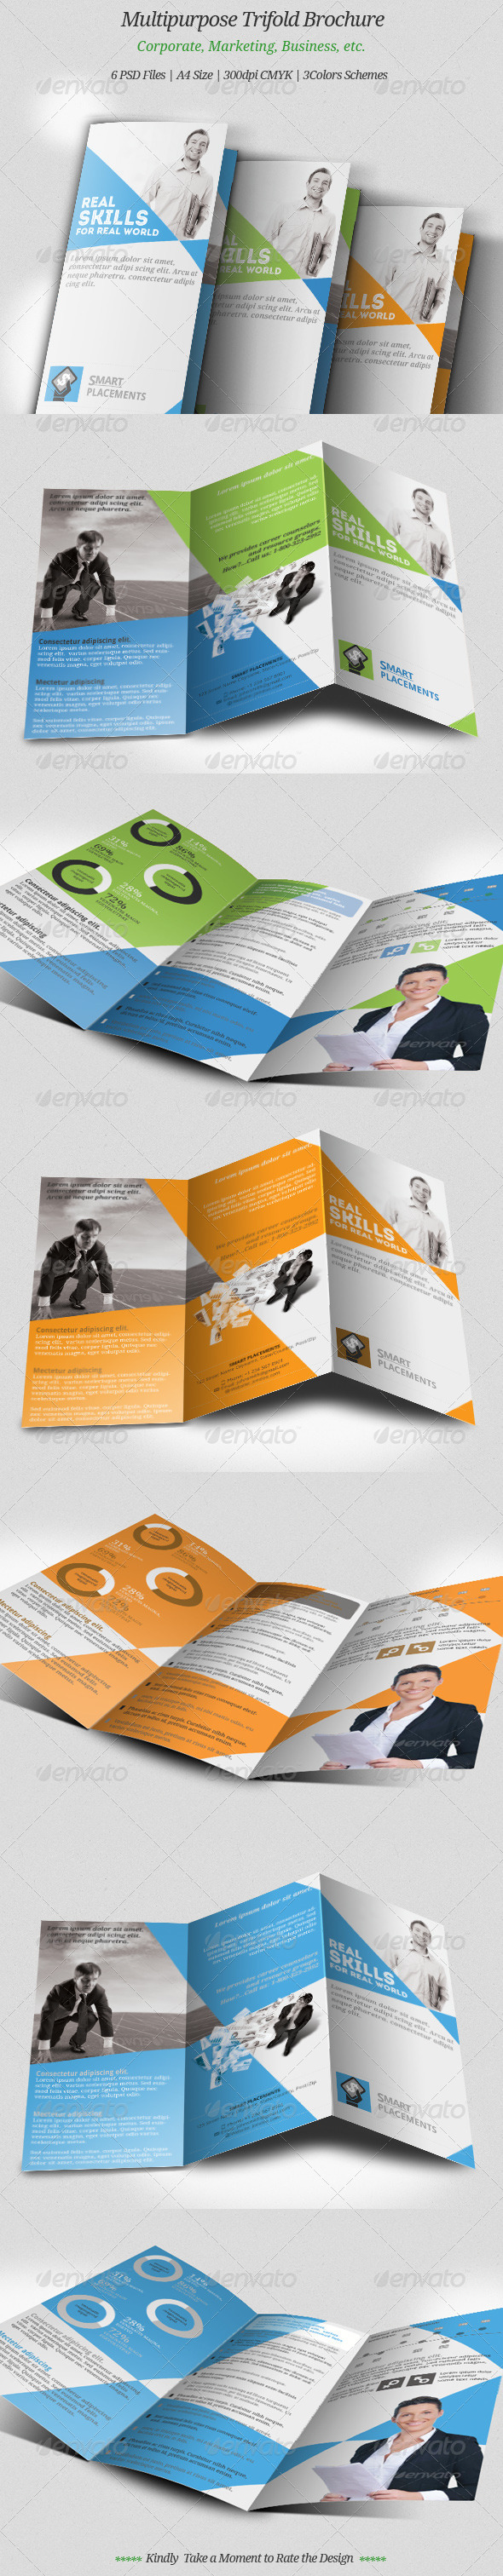 GraphicRiver Multipurpose Trifold Brochure 8502931